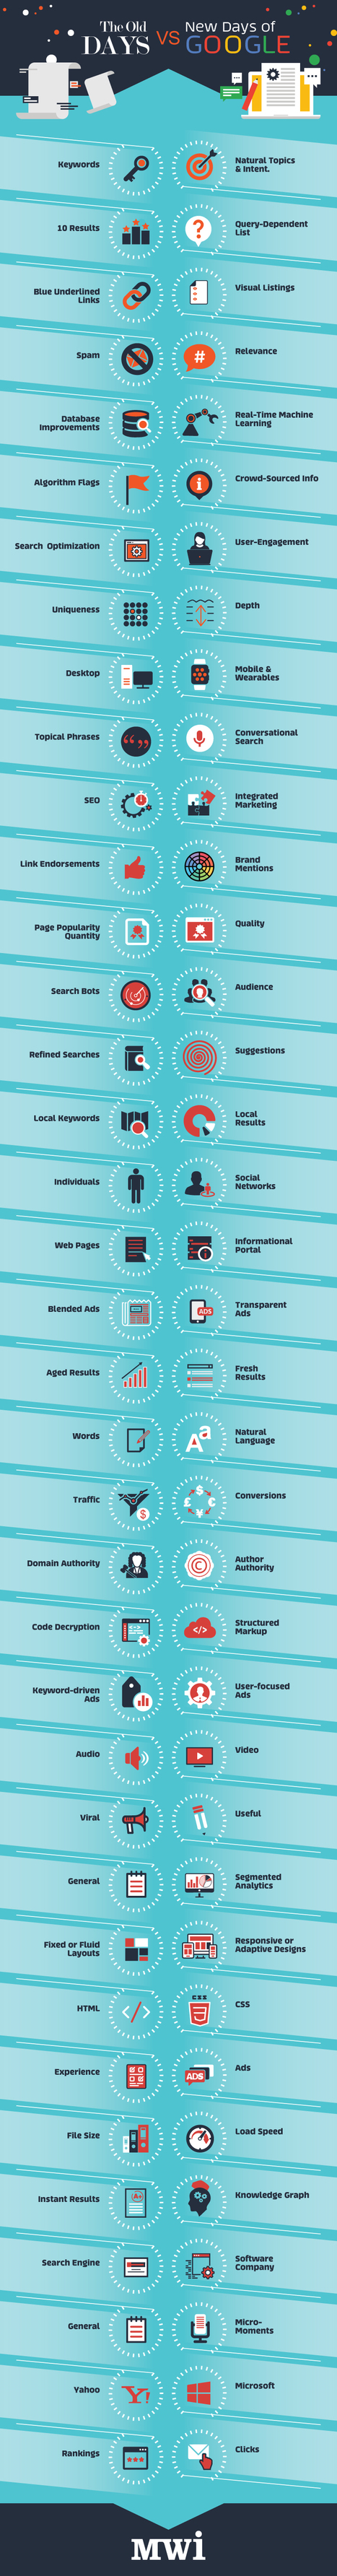 The Old Days VS New Days of Google [Infographic] | B2B Marketing & LinkedIn | Scoop.it